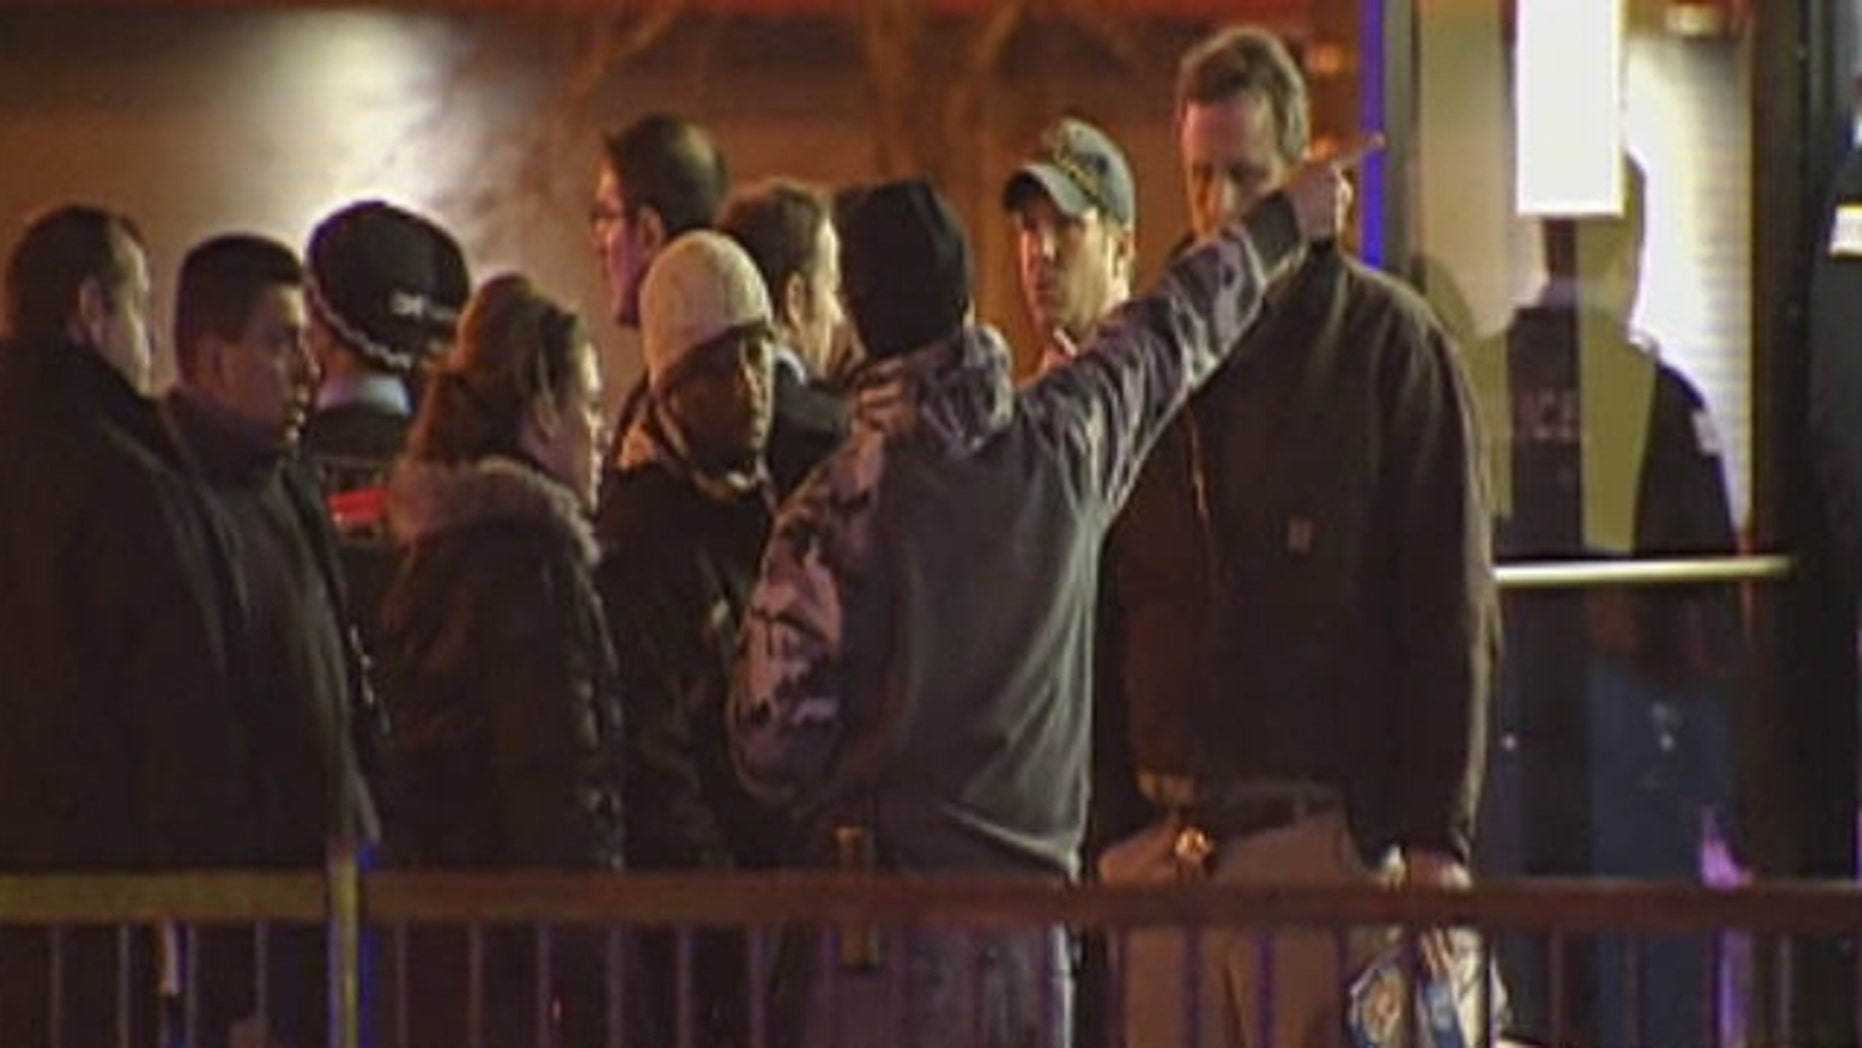 December 27, 2011: Onlookers stand outside the scene of a shooting in Chicago.